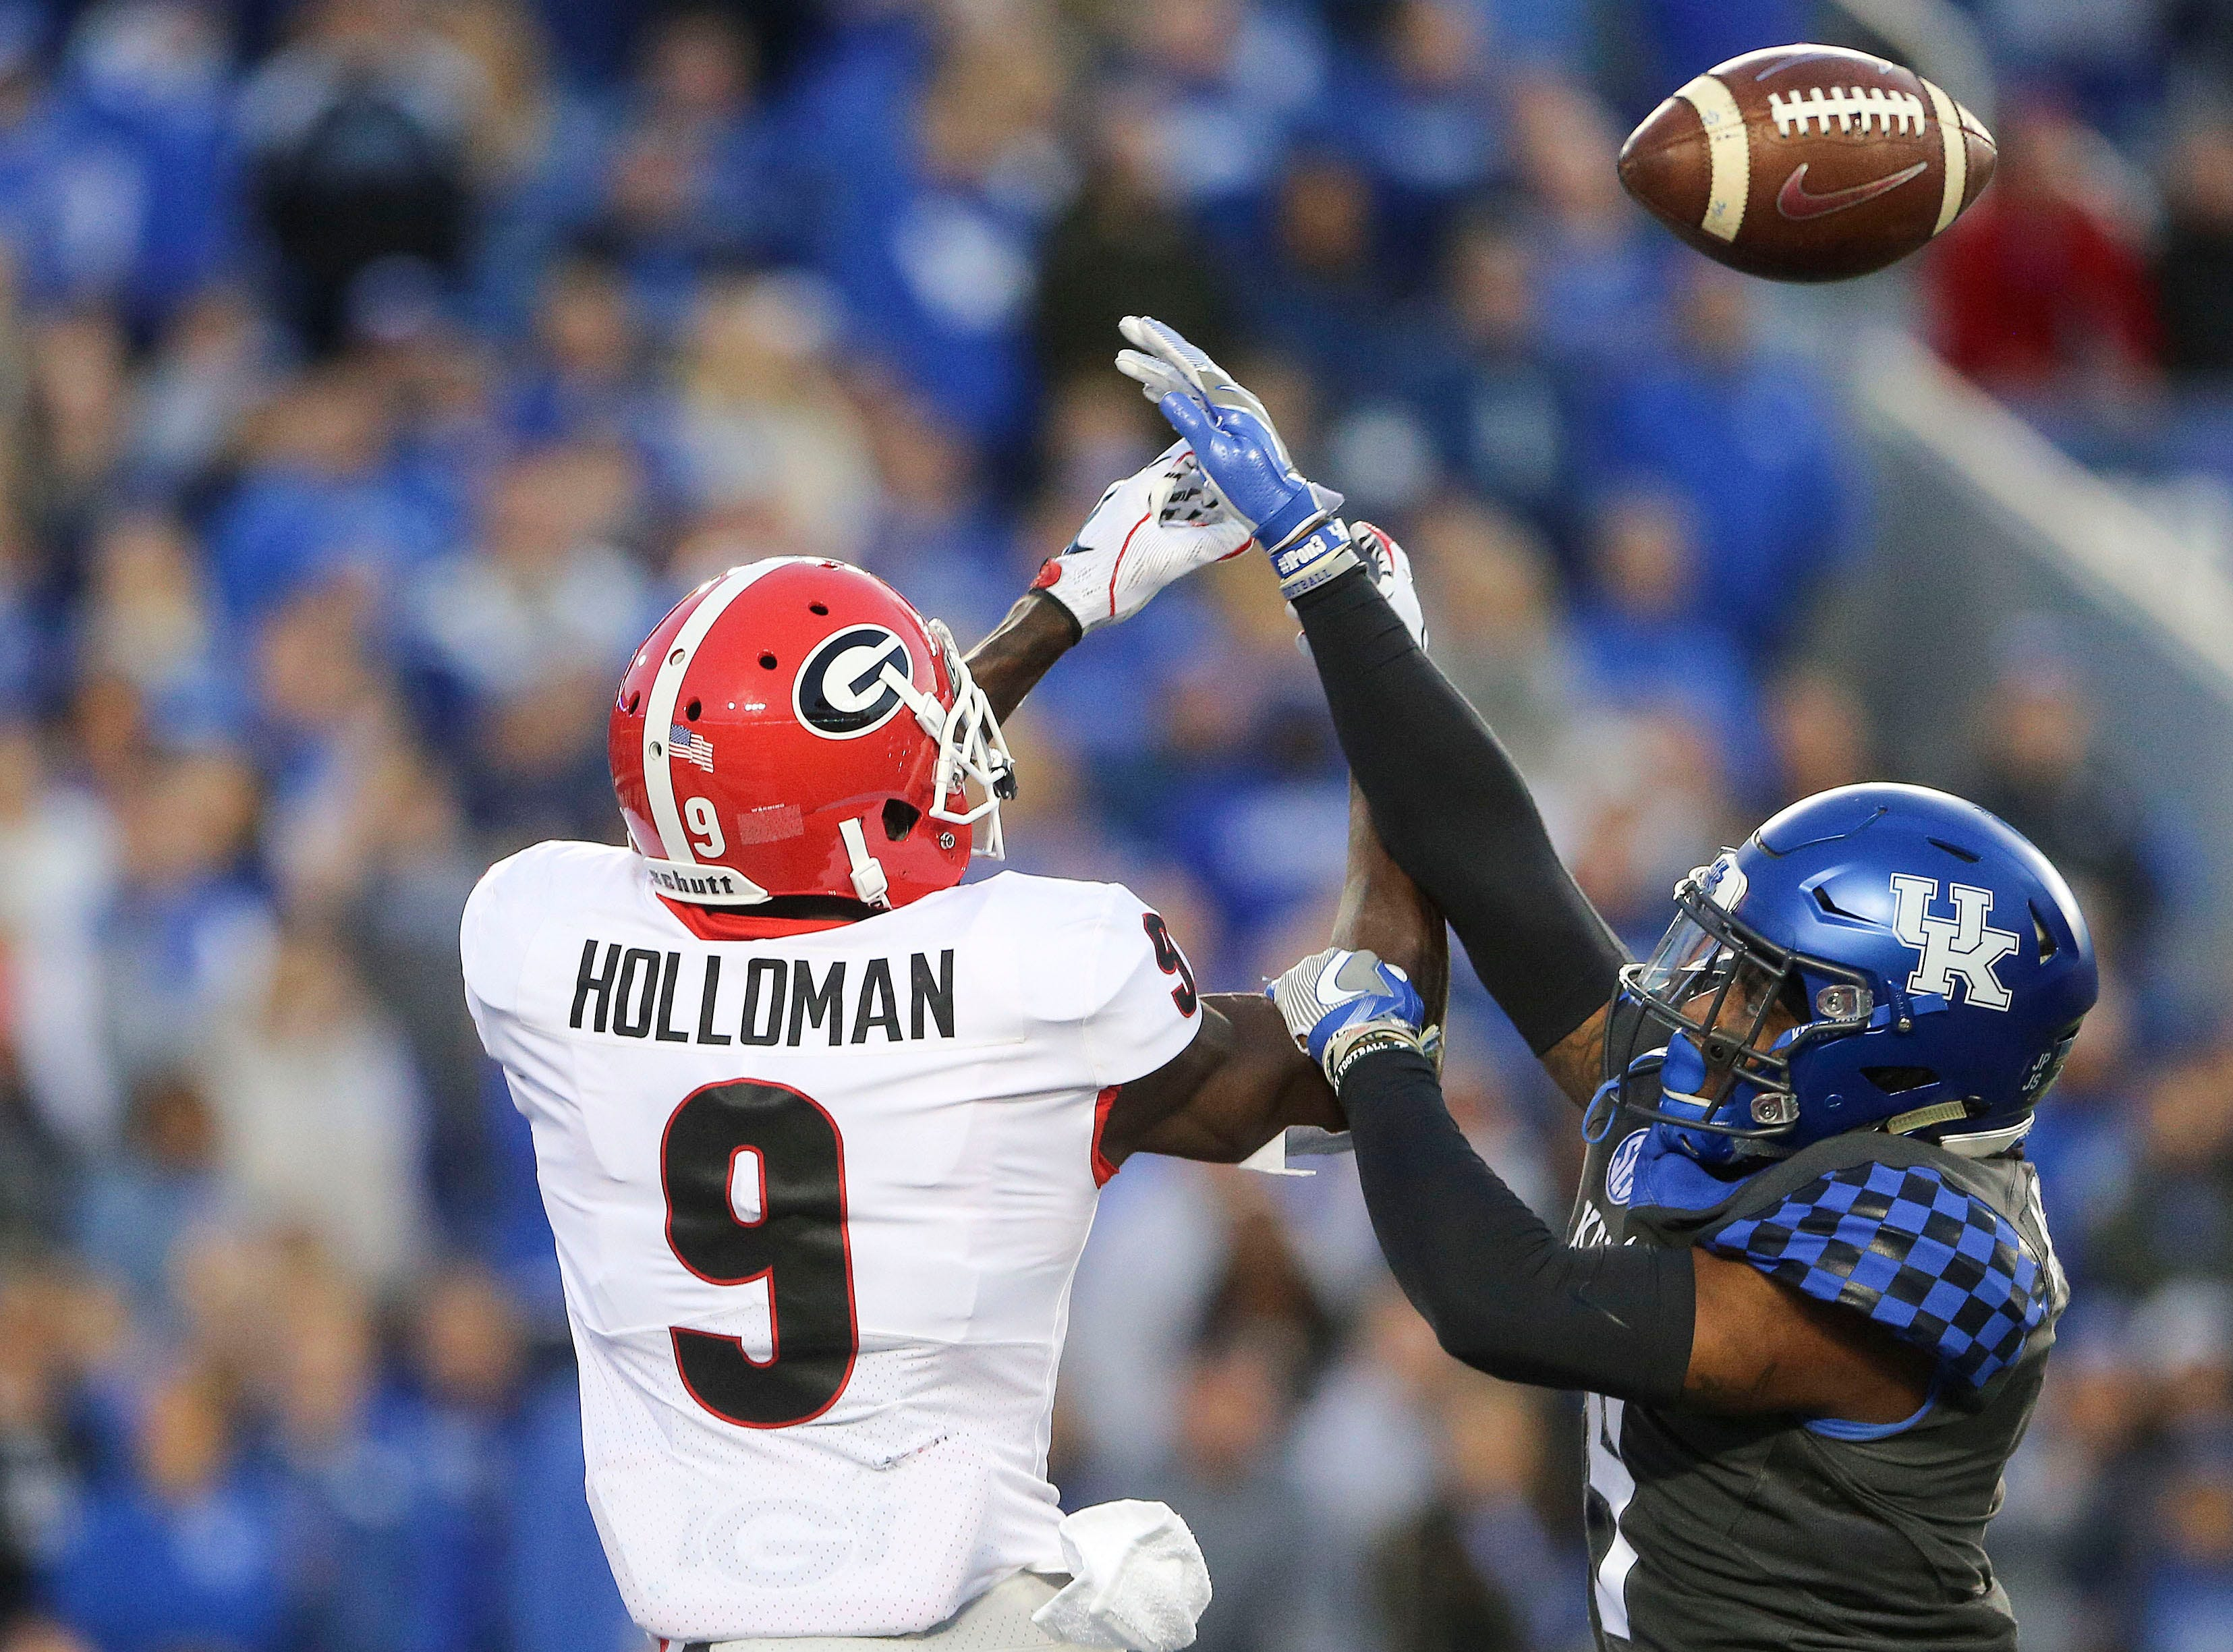 Kentucky Wildcats safety Davonte Robinson (9) breaks up the pass thrown to Georgia Bulldogs wide receiver Jeremiah Holloman (9) in the second half at Kroger Field.